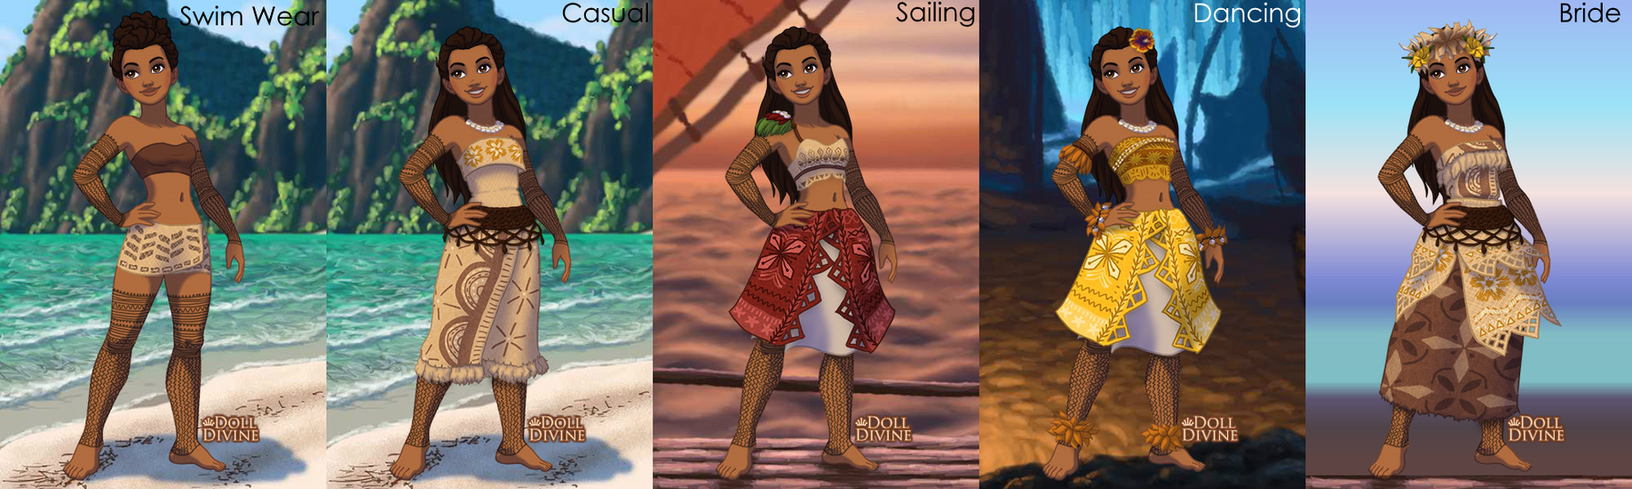 Moana OC Samaria With Outfits By XxLyraTheCatxX